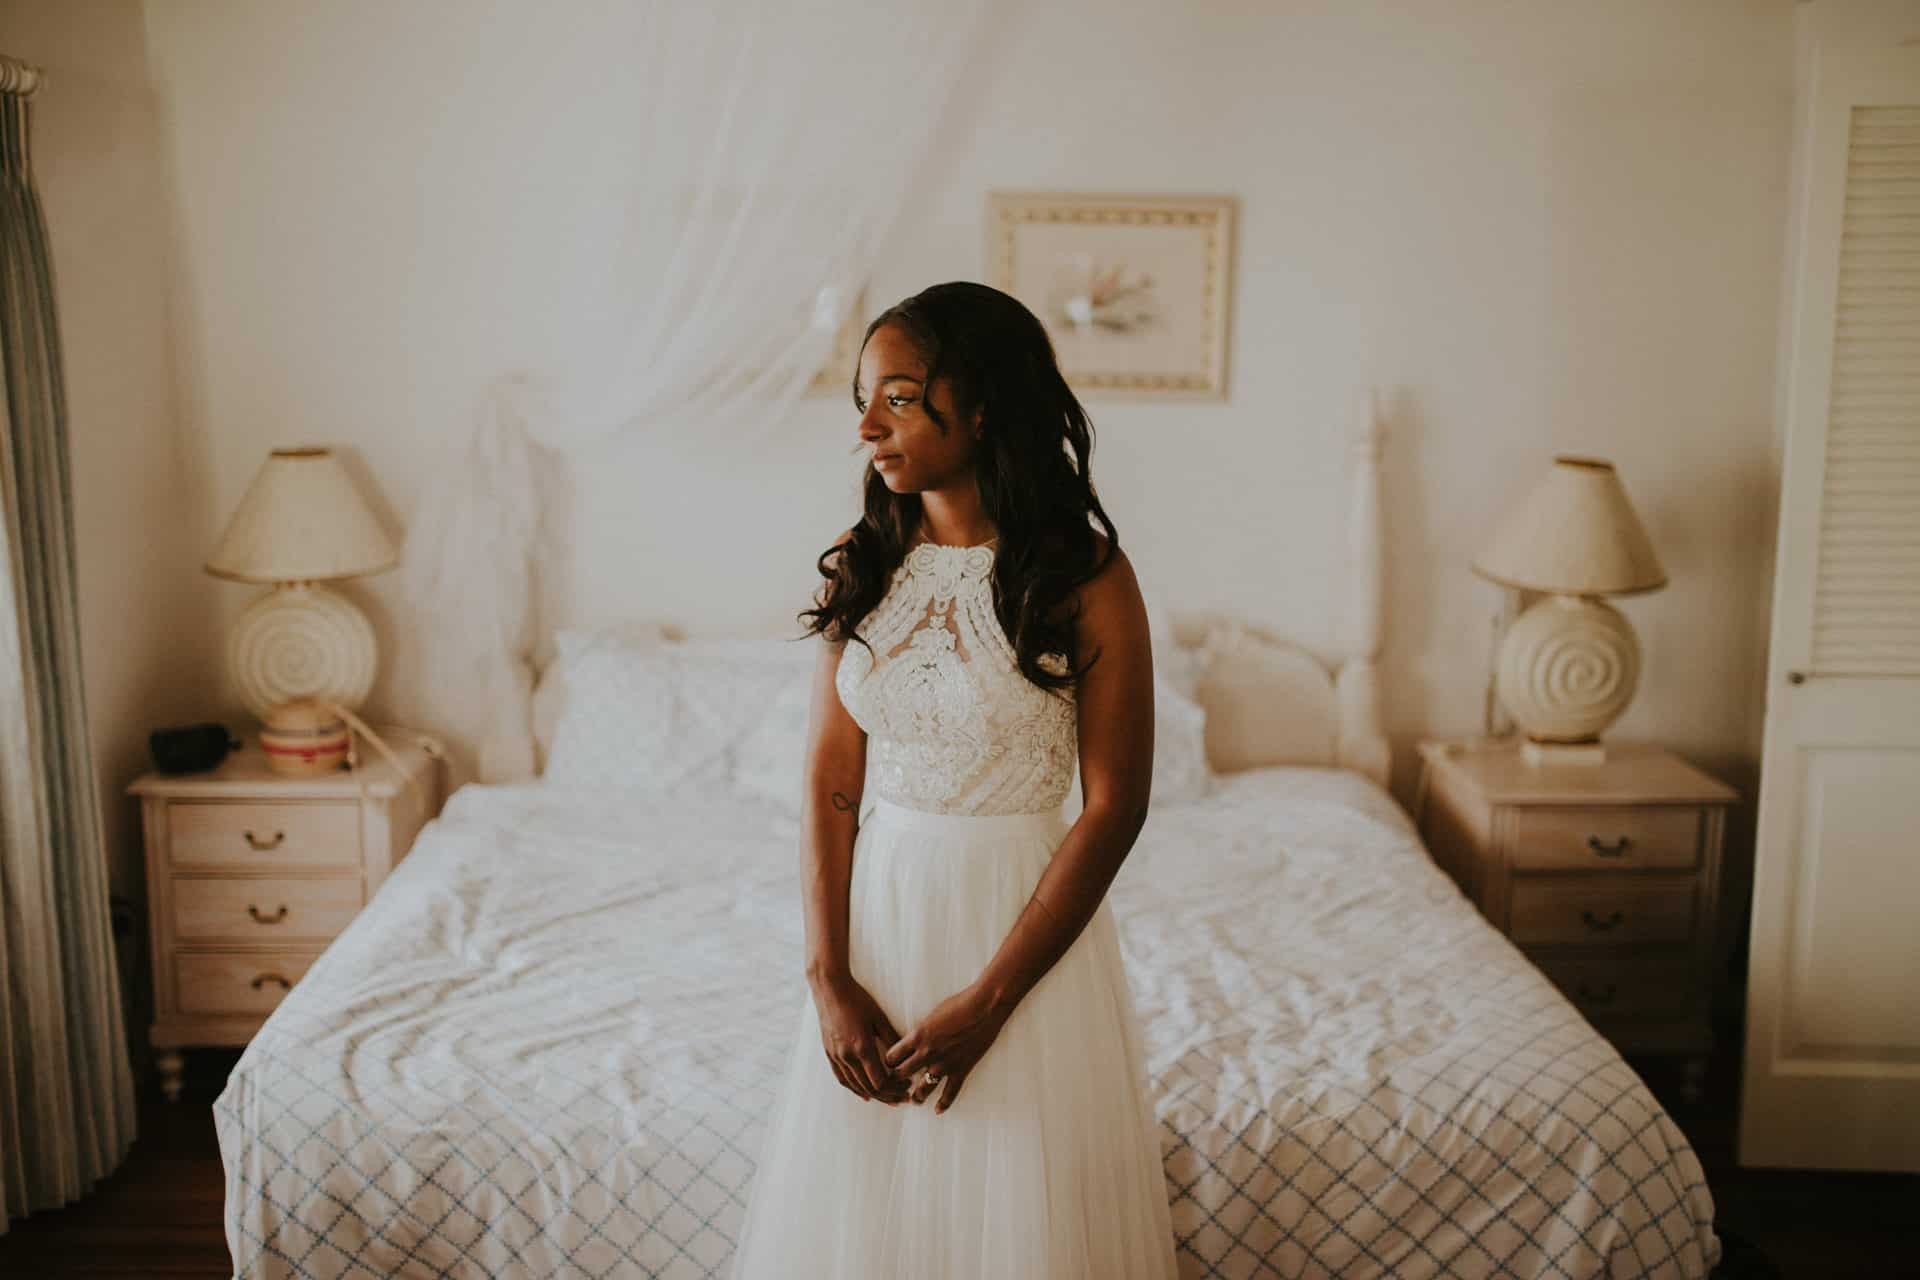 The bride is wearing her wedding dress and is standing in front of a bed.